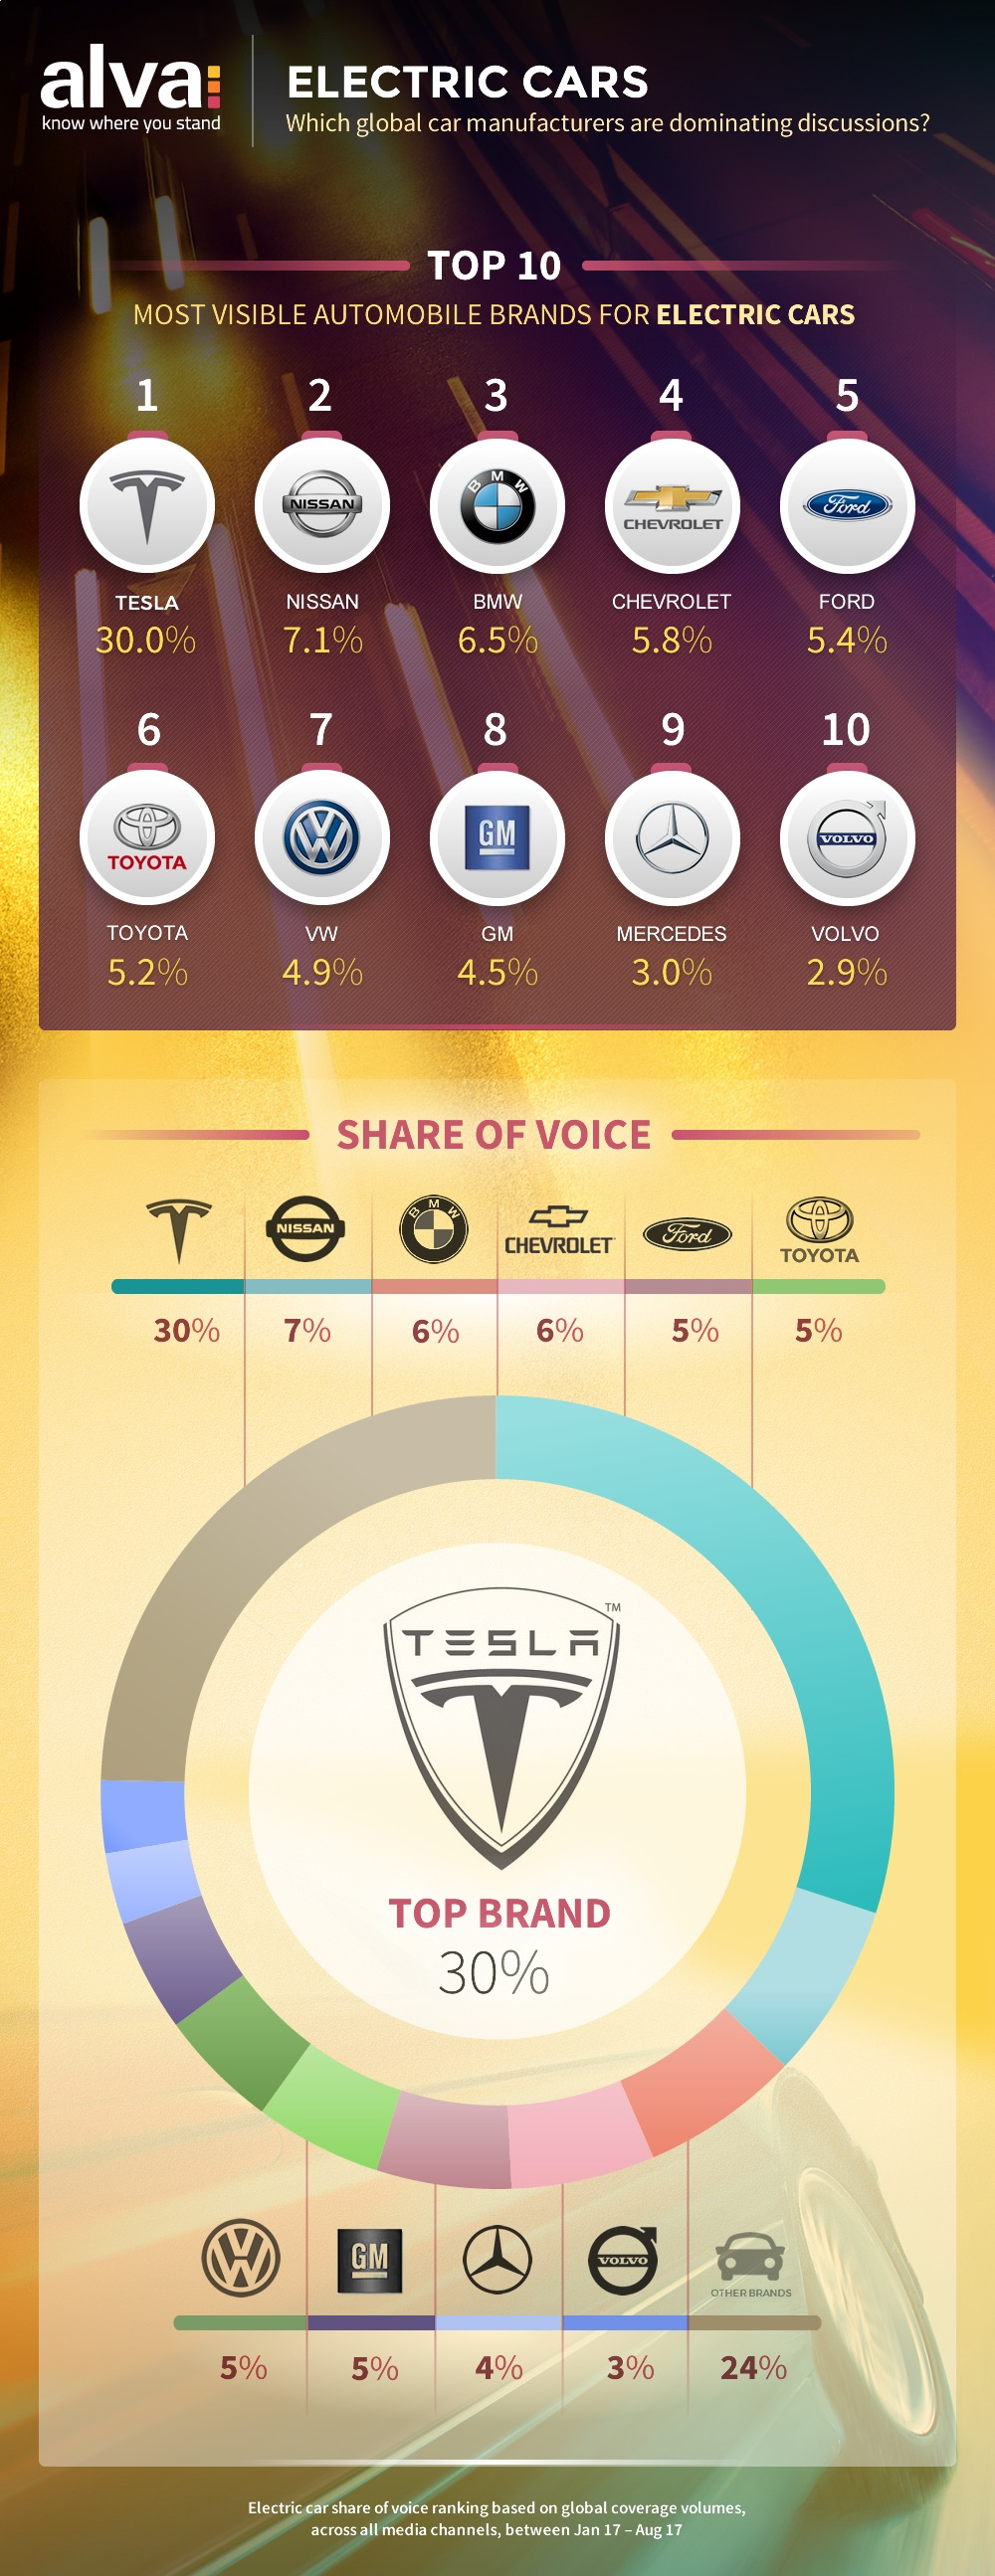 Electric car ranking